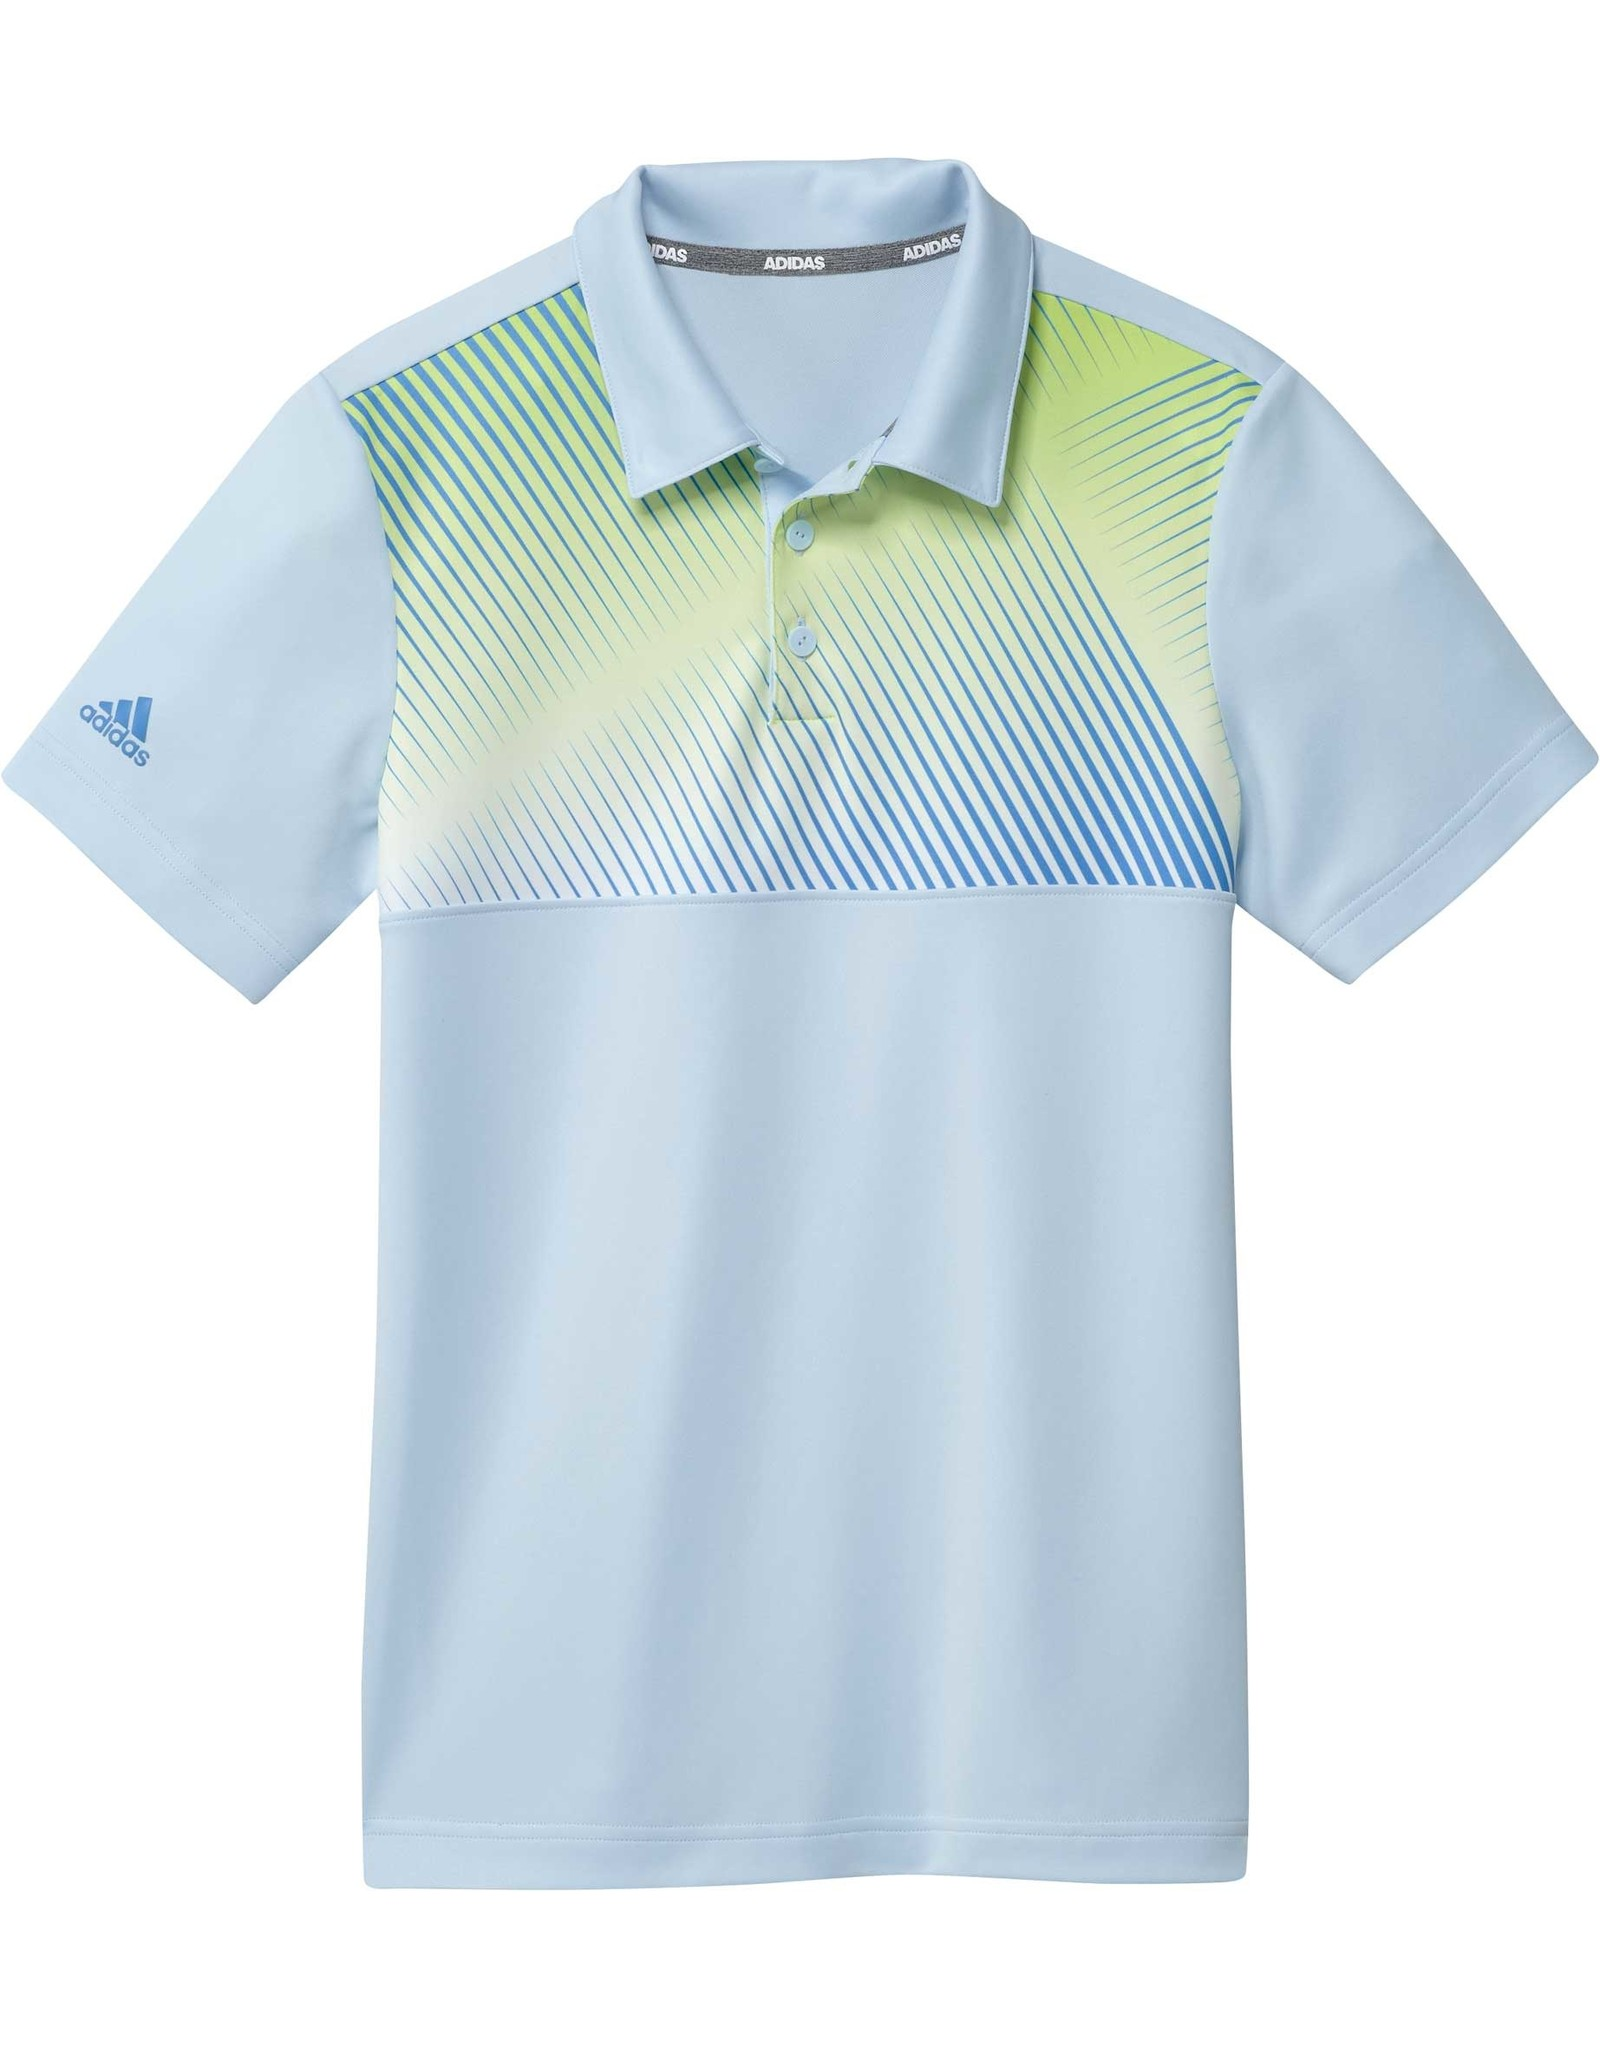 Adidas ADIDAS YOUTH POLO (FI8720) S